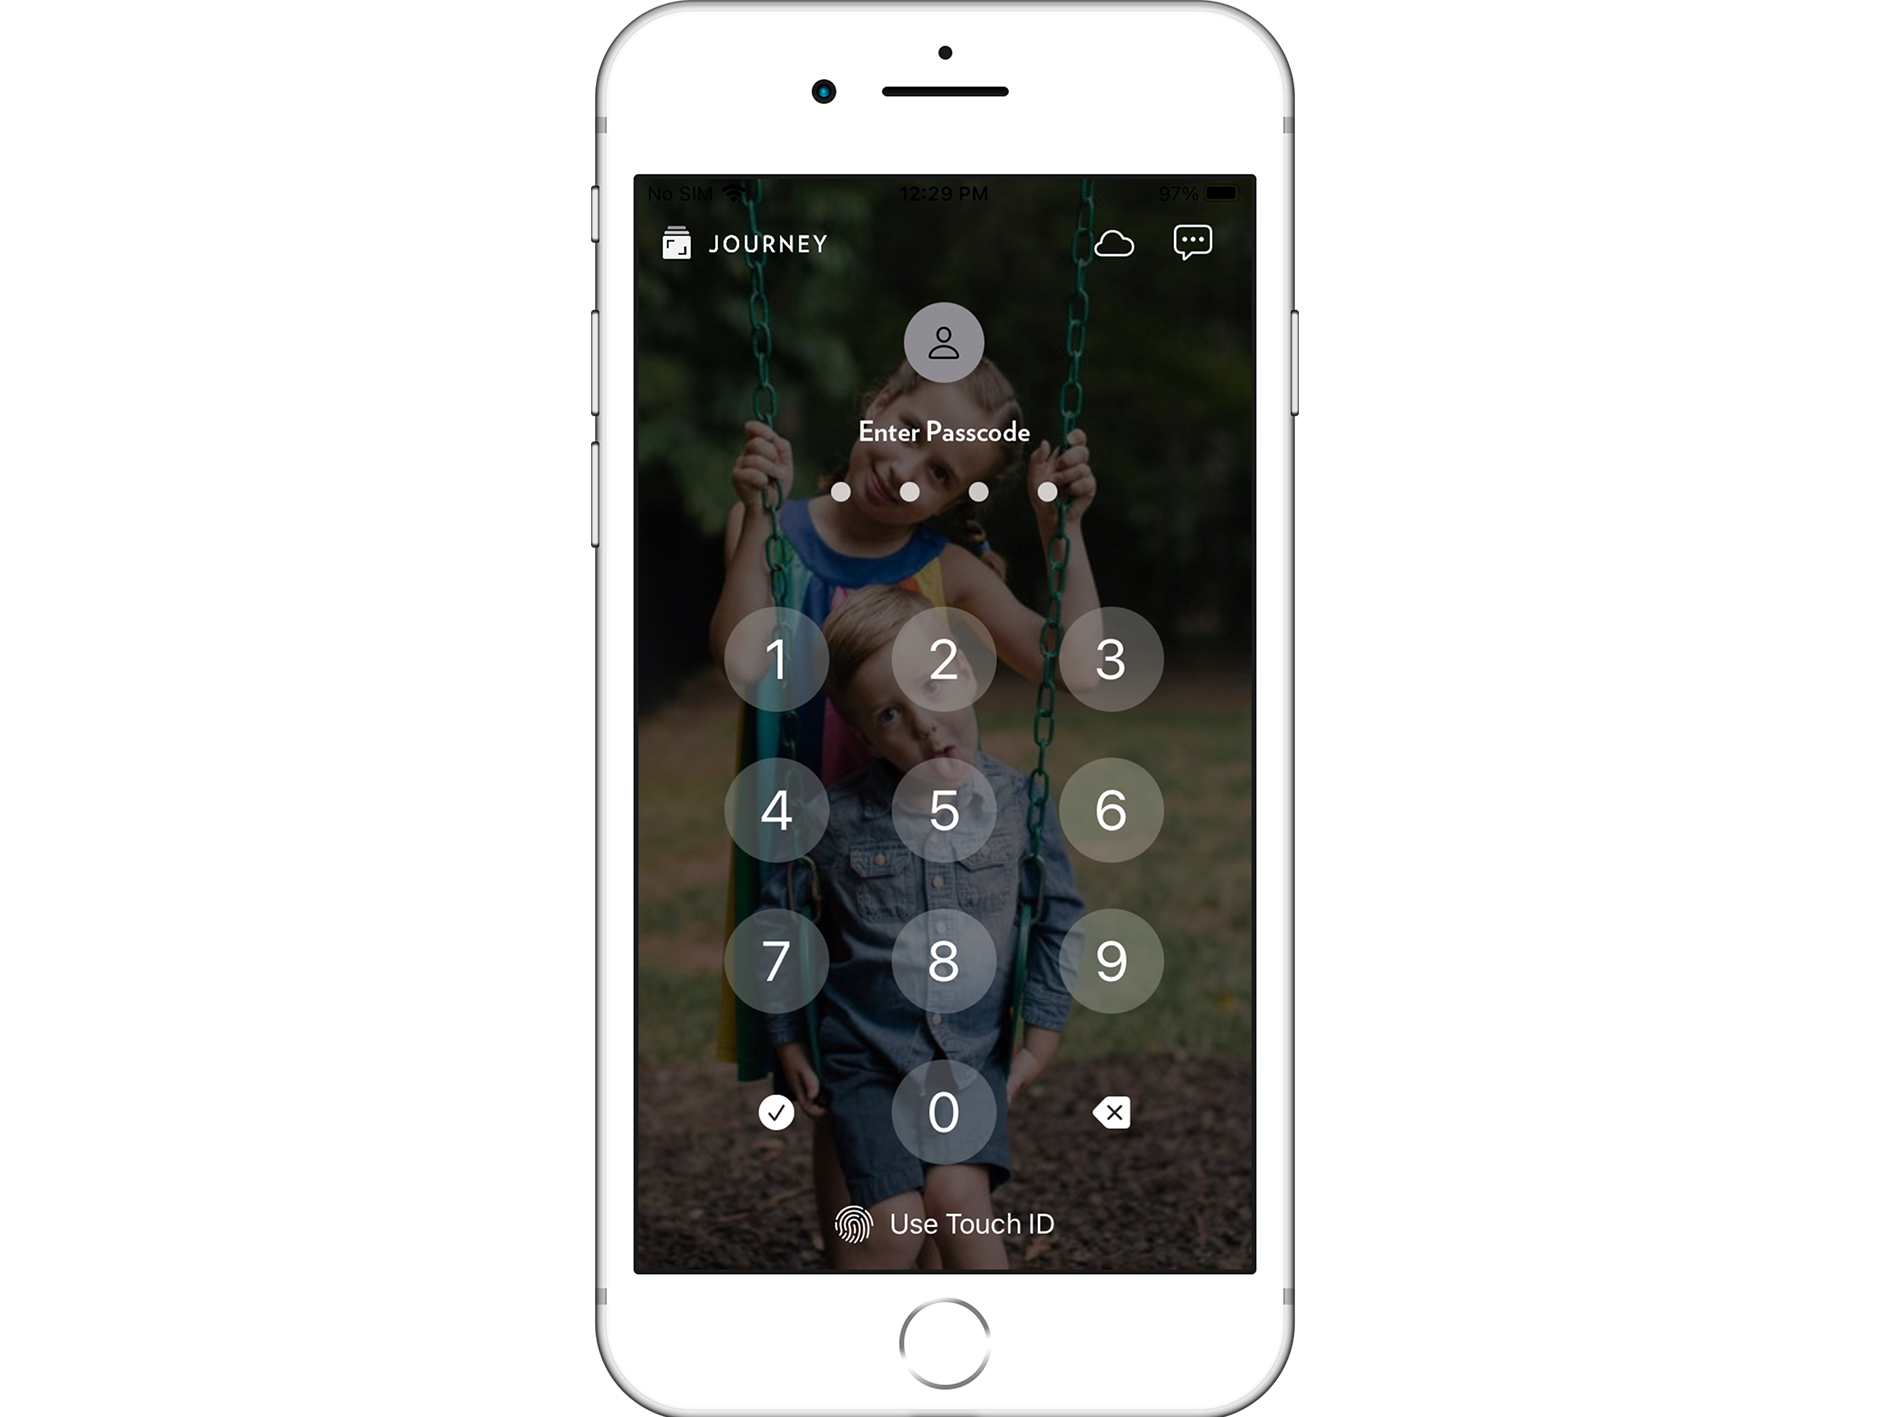 Journey's passcode and Touch ID security feature on Apple iPhone